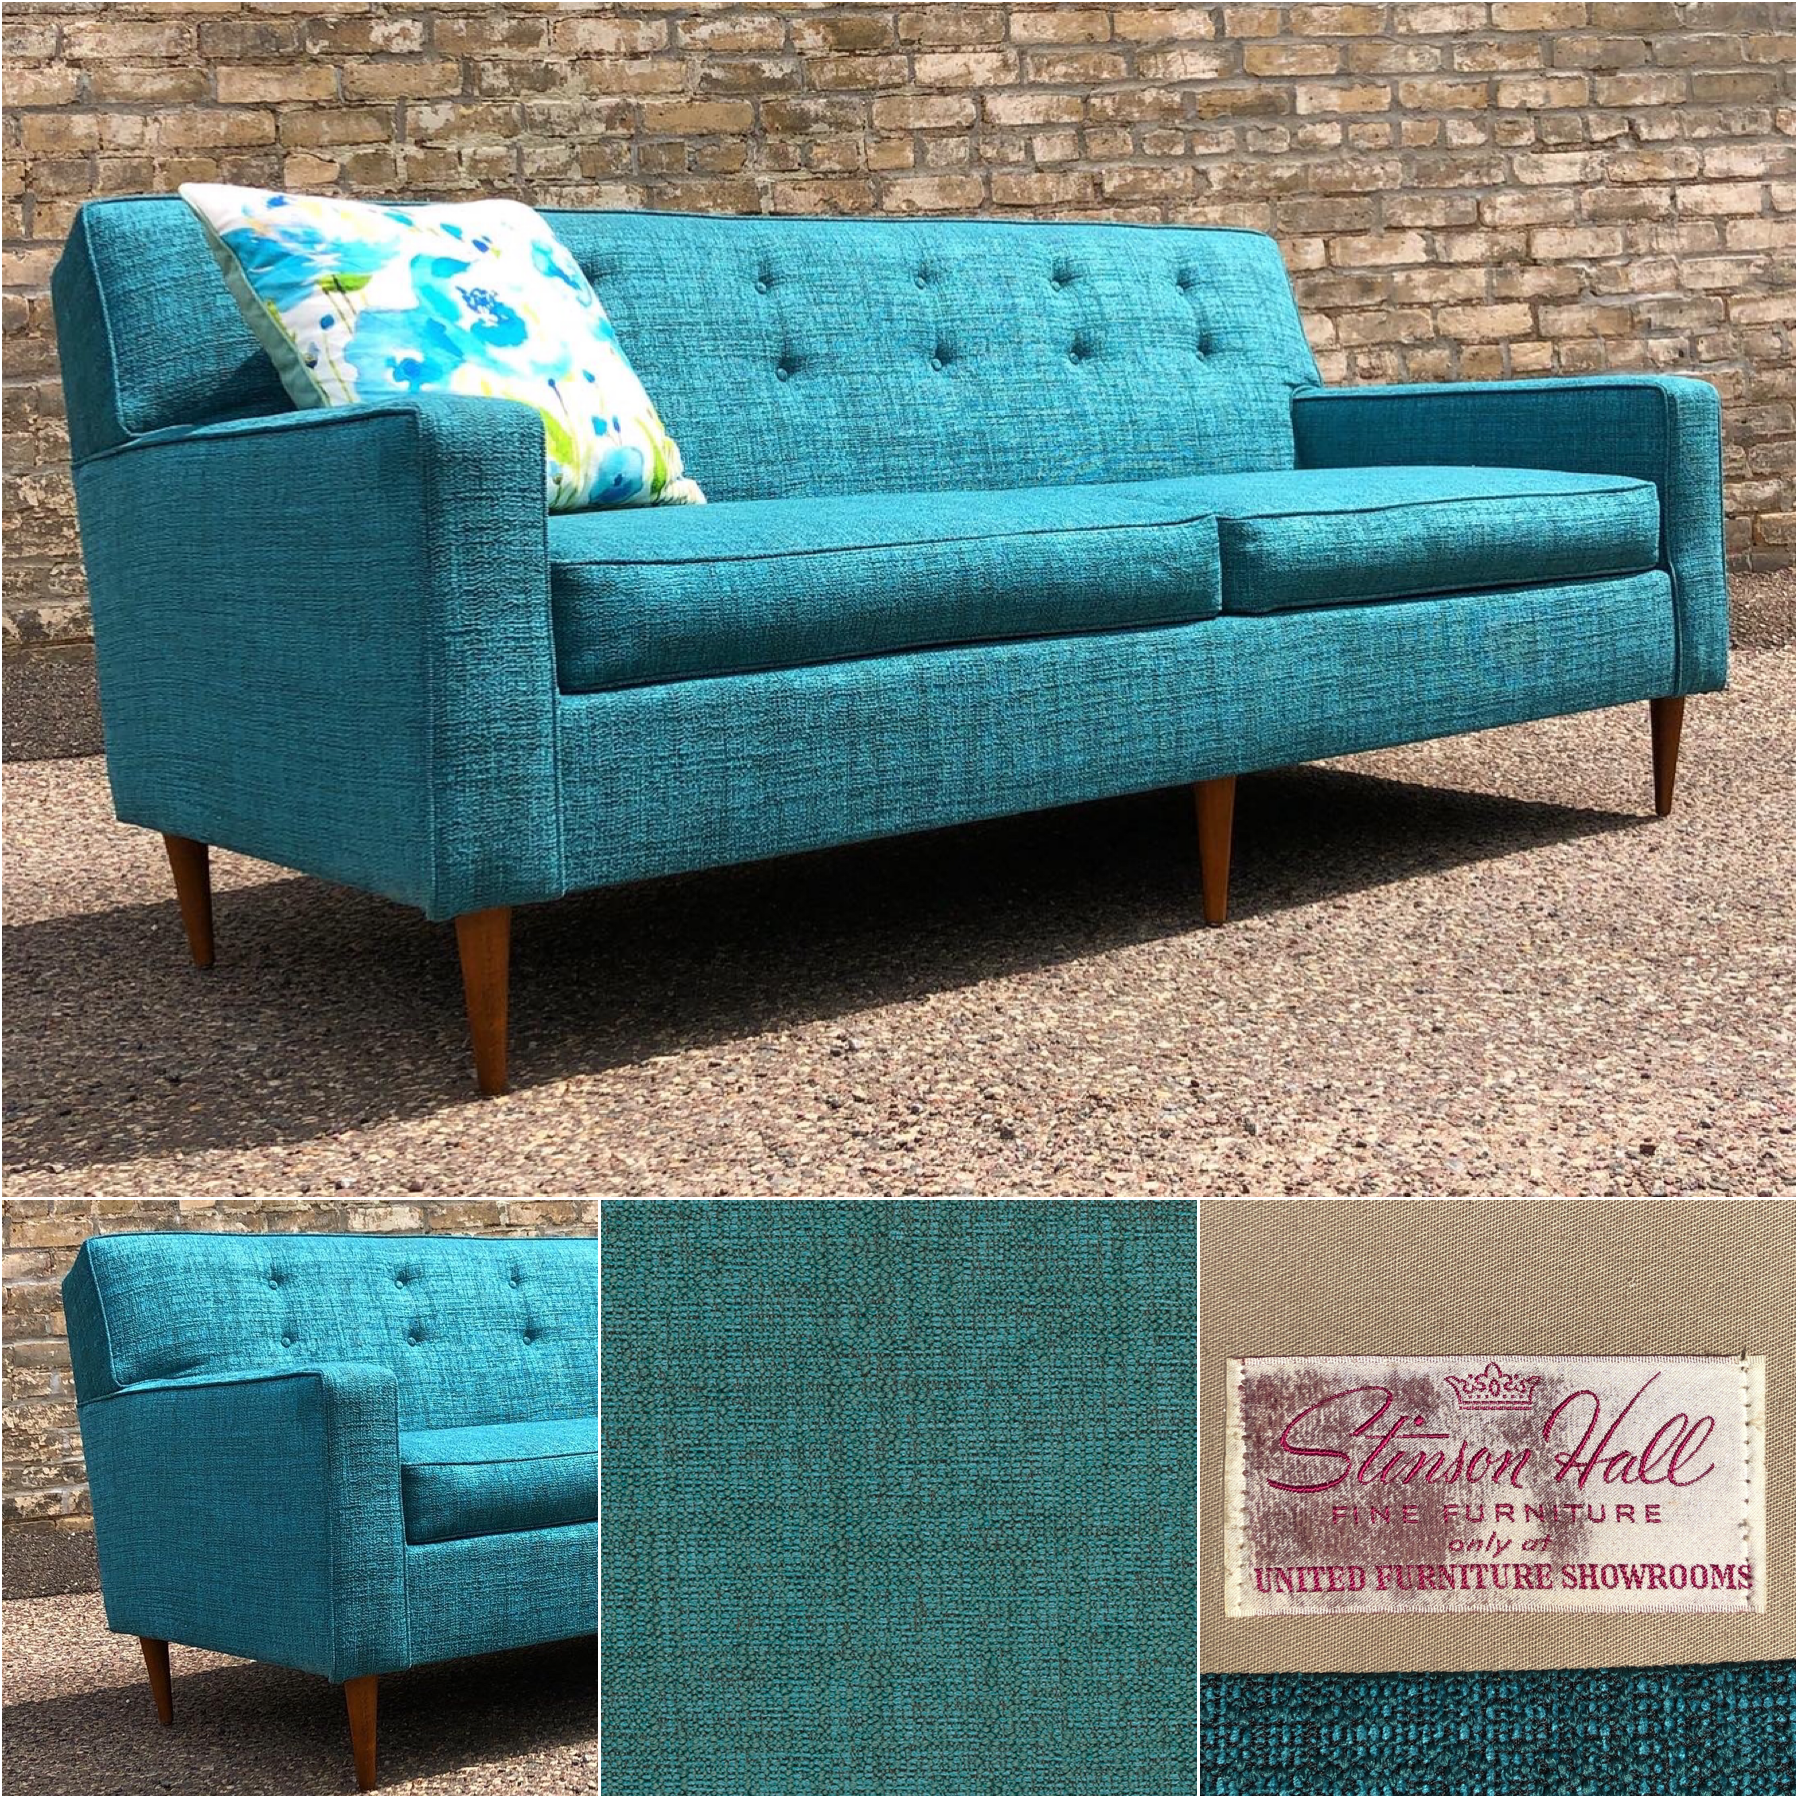 """Mid-century 67"""" sofa reupholstered in teal tweed fabric"""